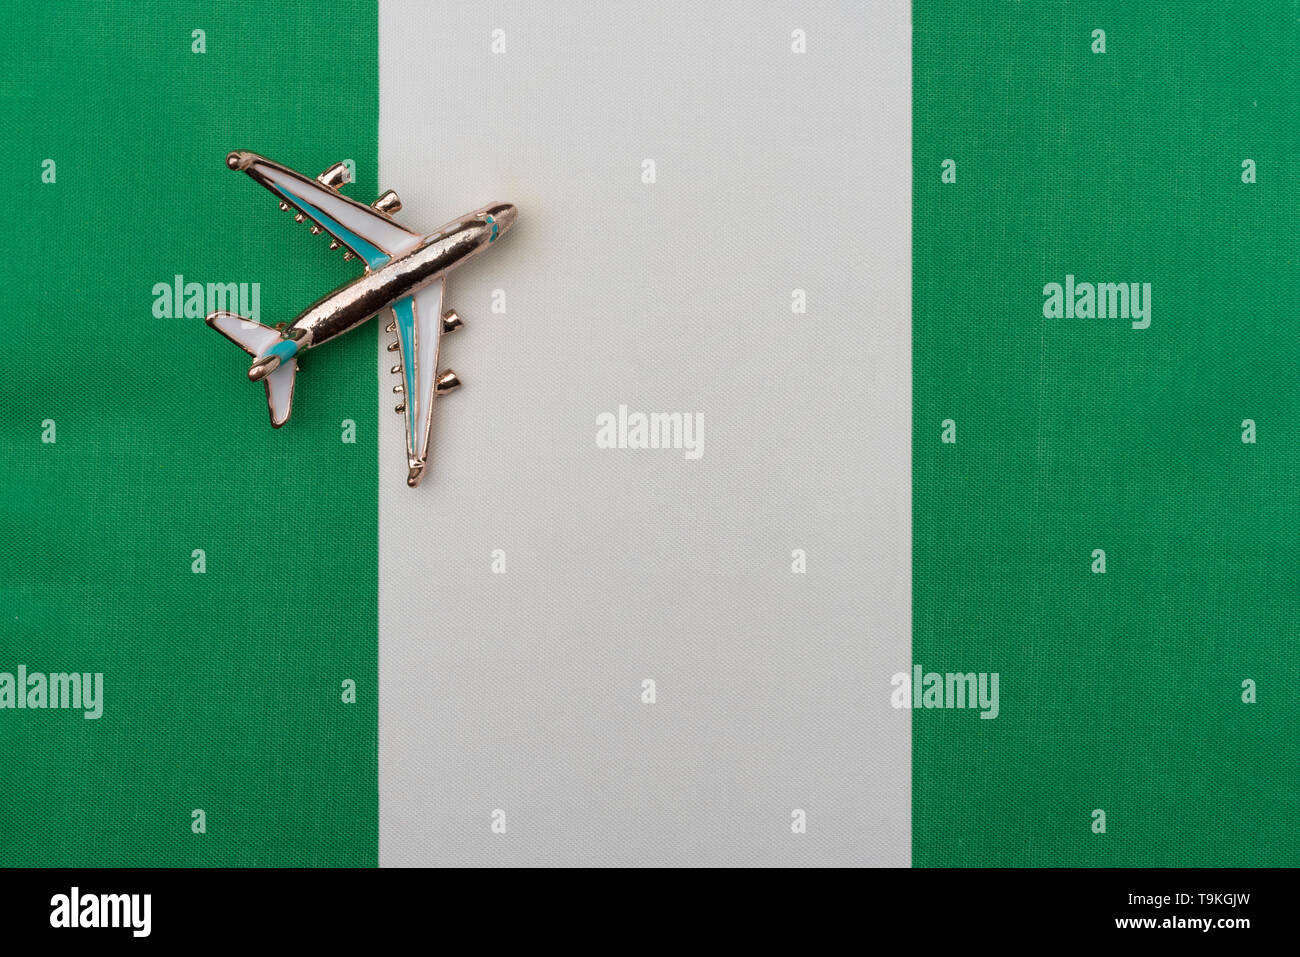 Plane over the flag of Nigeria travel concept. Toy plane on the flag in the background. - Stock Image